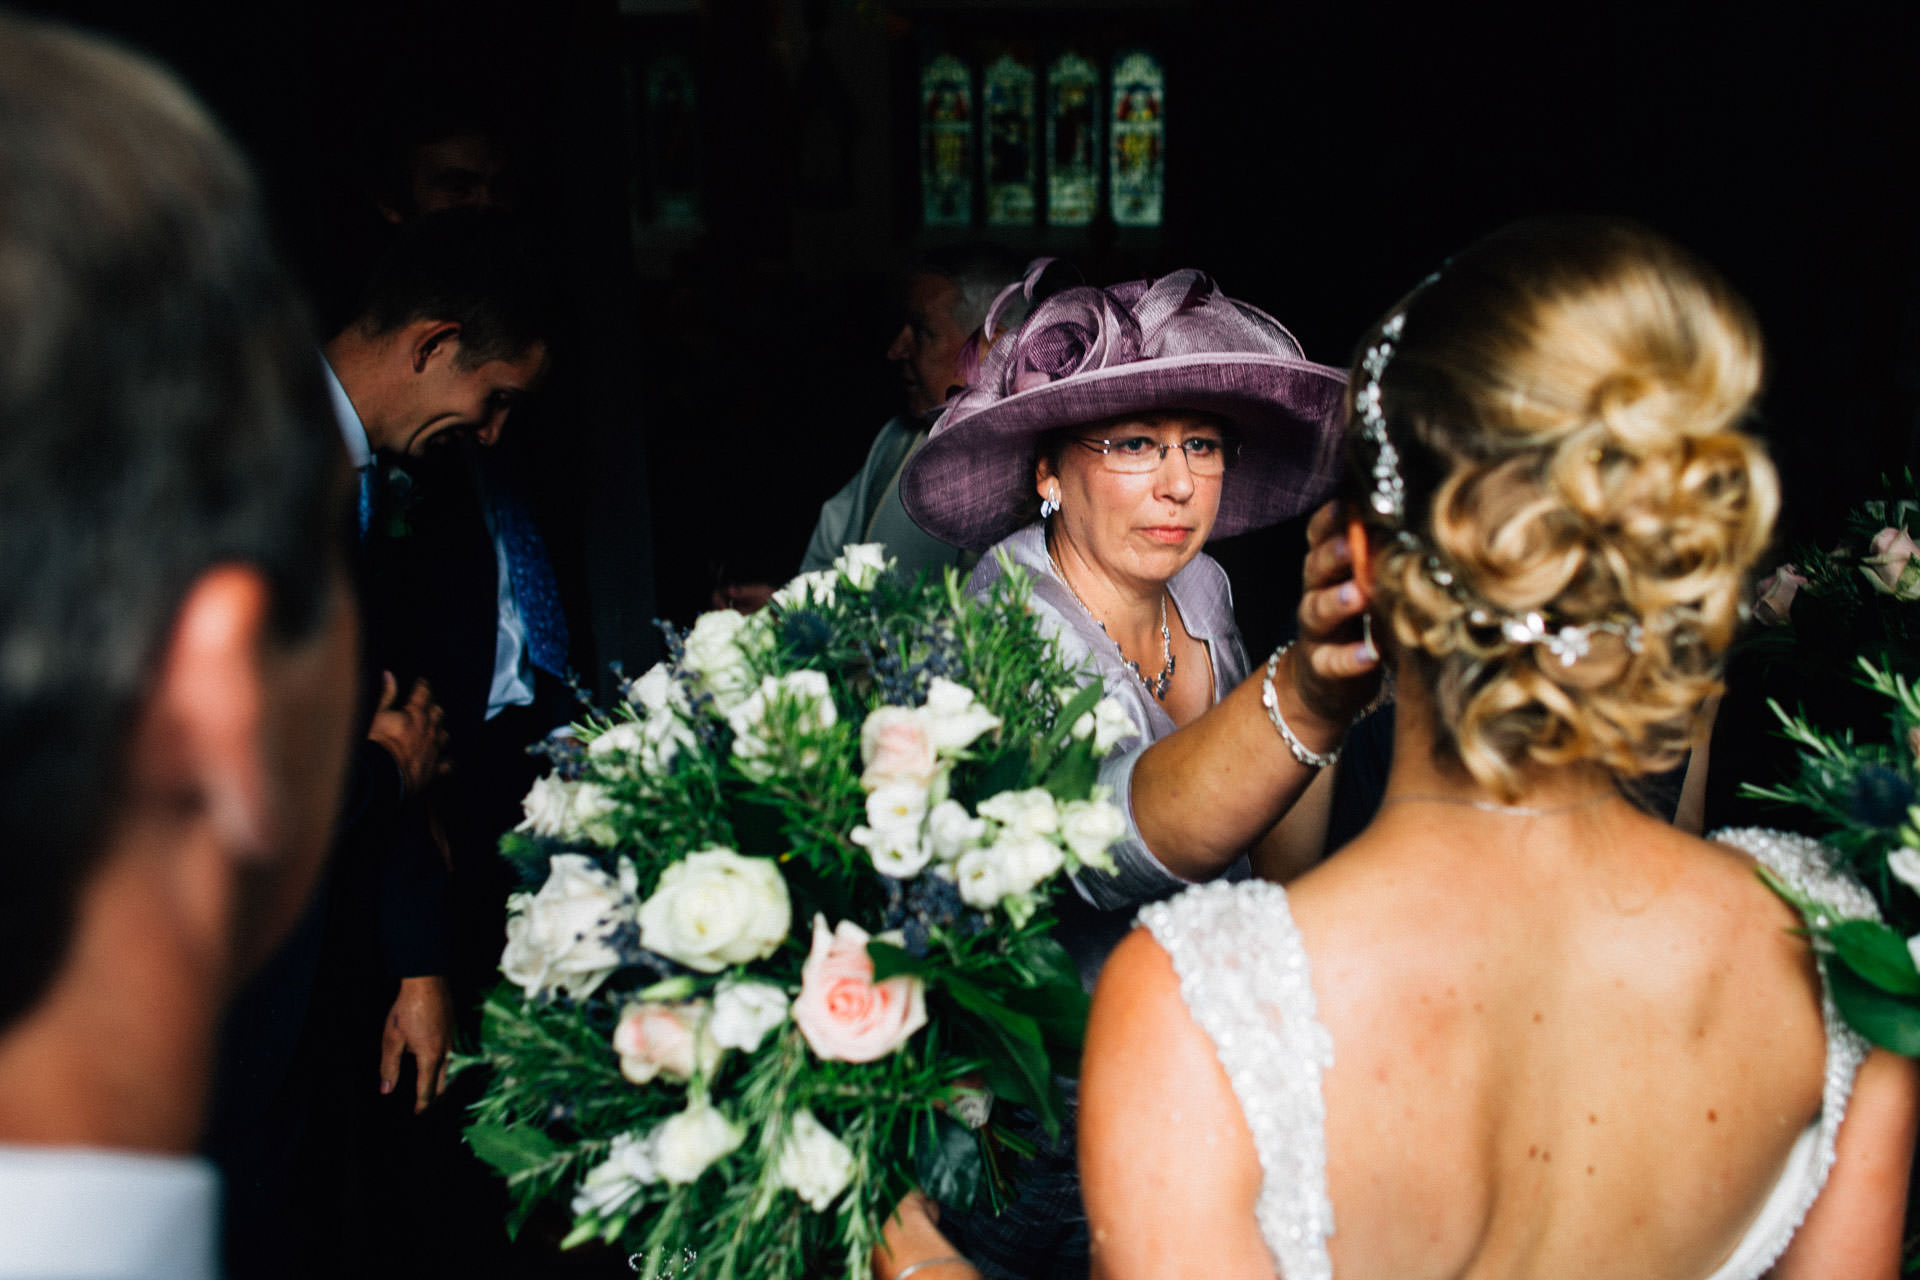 Best wedding photography 2016 - mum with hat wiping tears